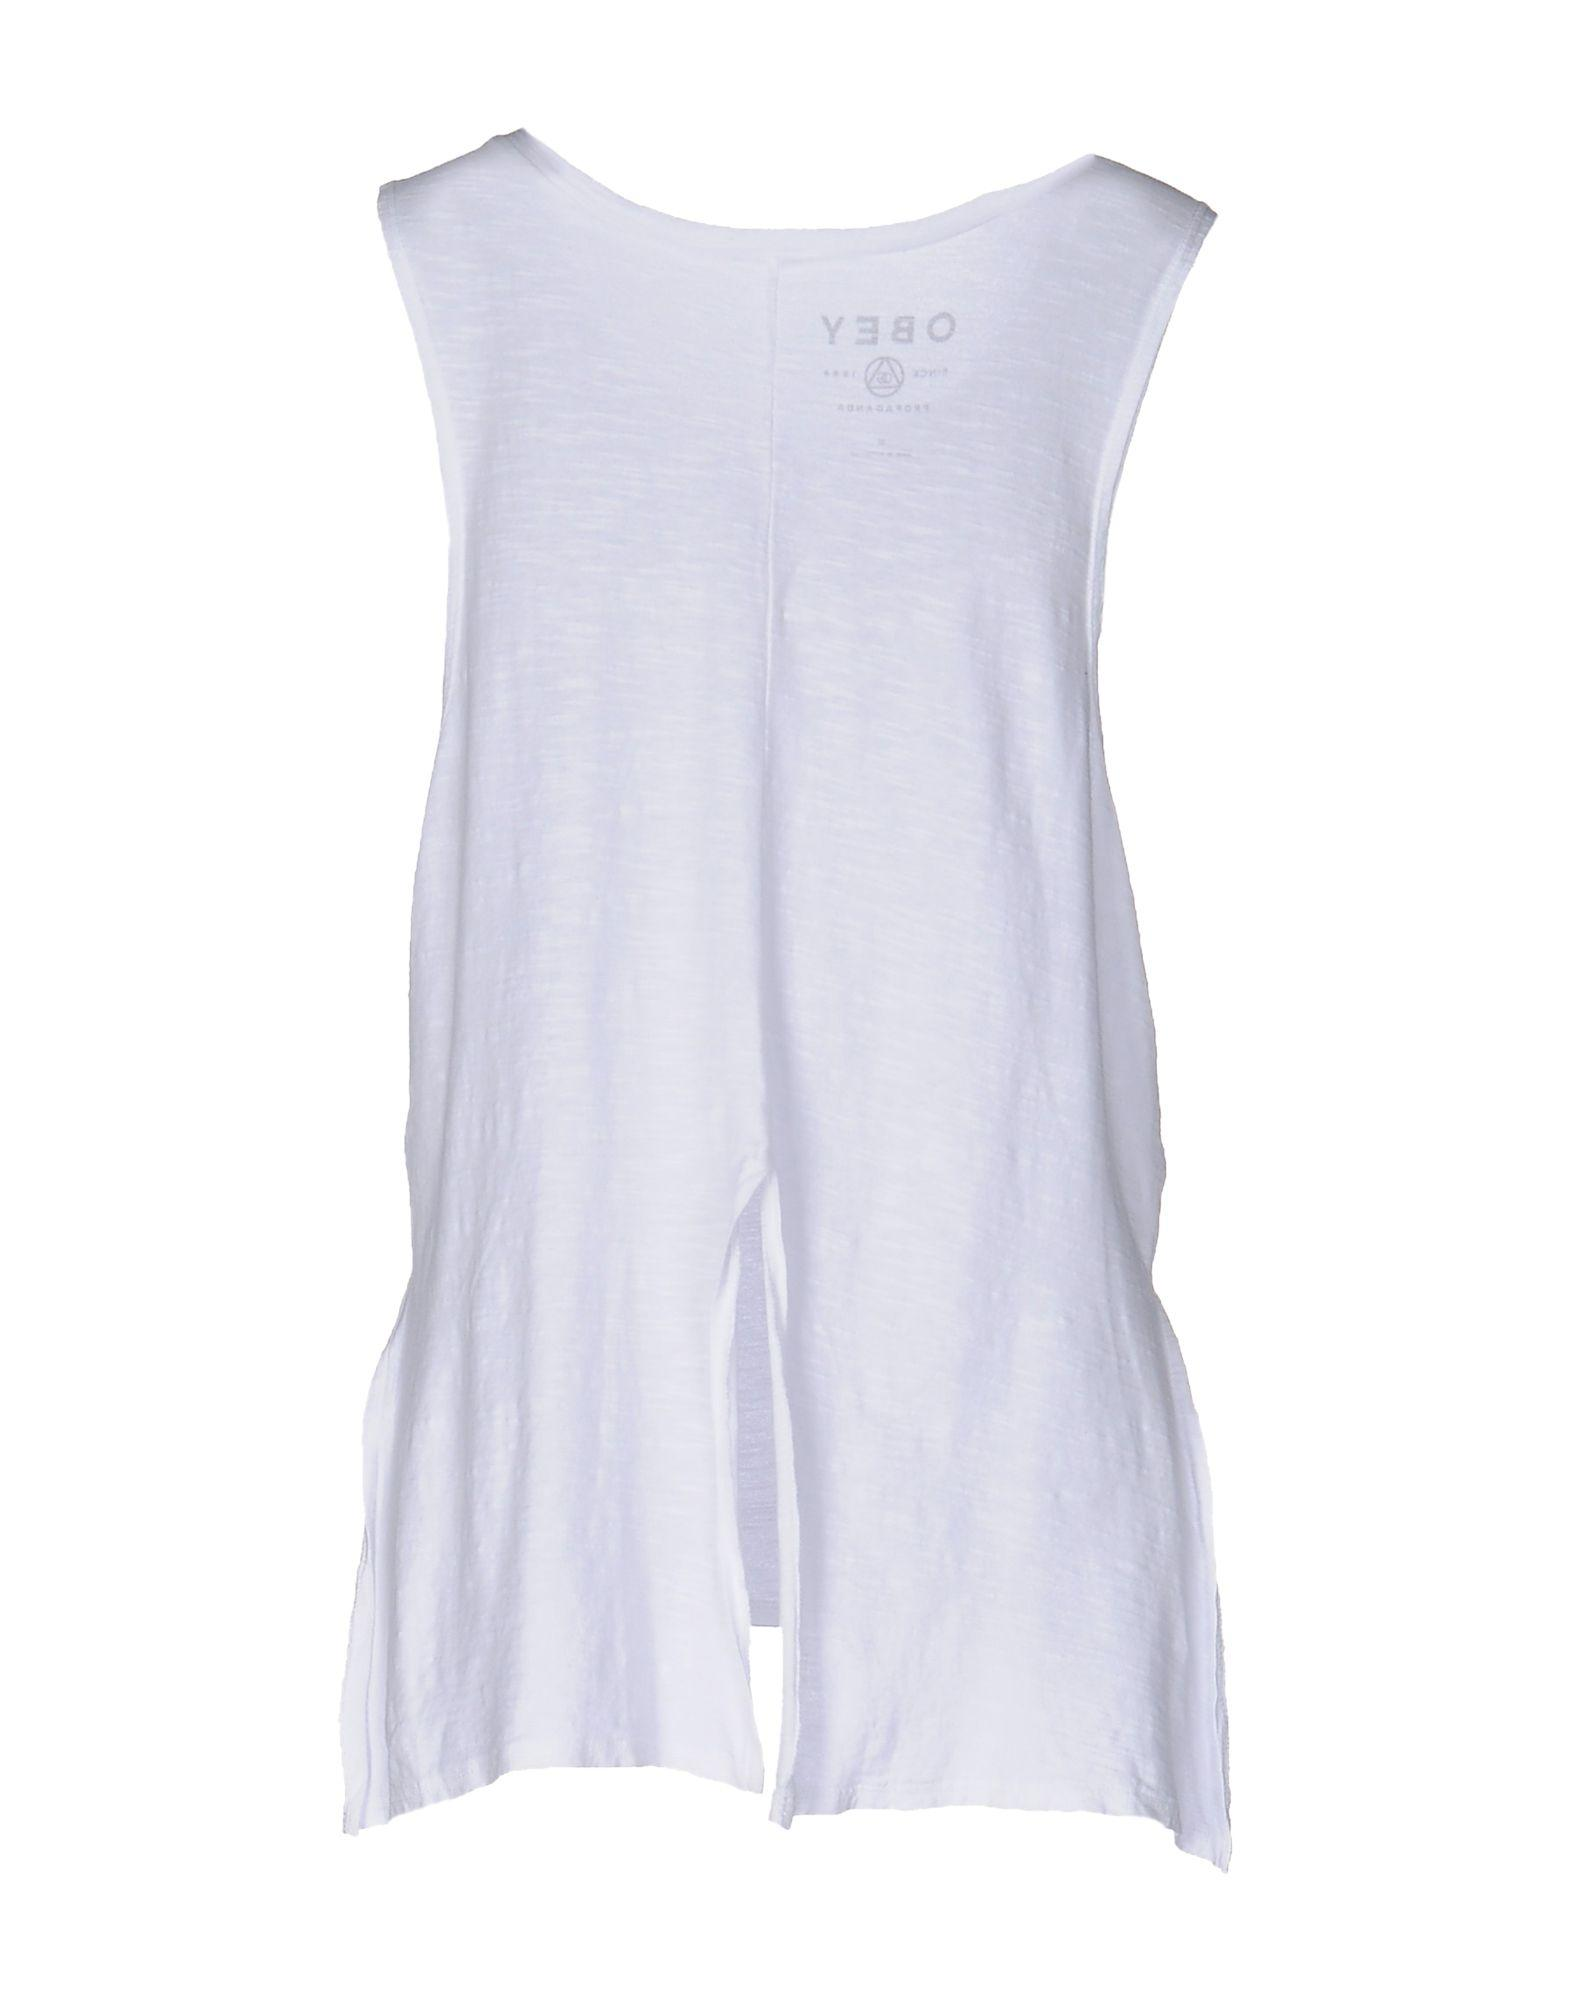 obey tank top in white lyst. Black Bedroom Furniture Sets. Home Design Ideas